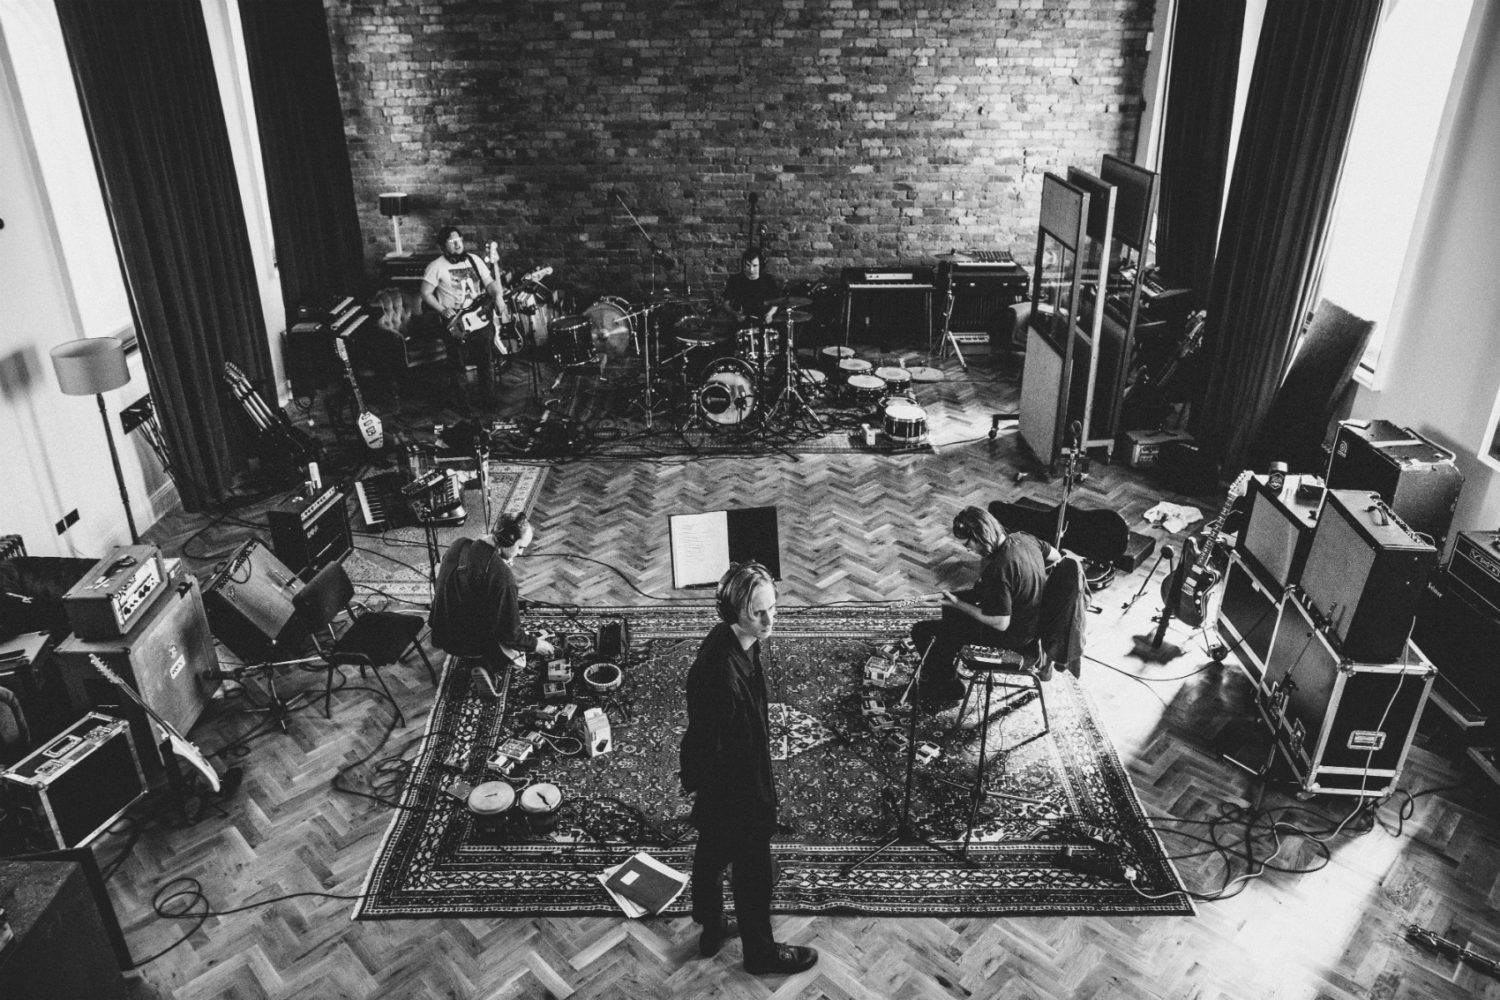 """Eagulls in the studio: """"At times the process became pretty gruelling"""""""